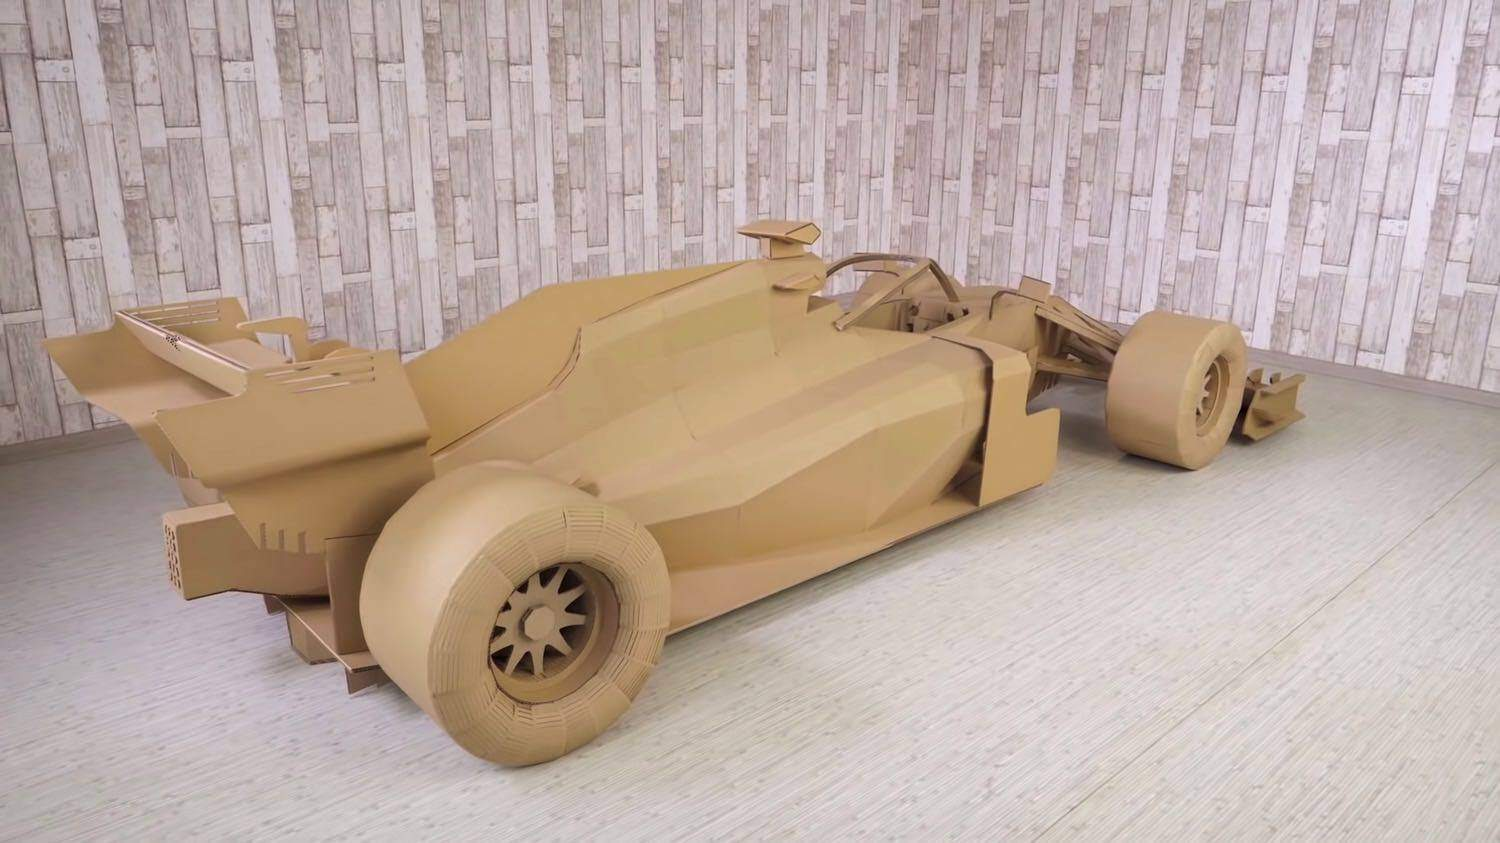 How to Make FORMULA 1 Car from Cardboard for 500 hours 5 9 screenshot 1500x843